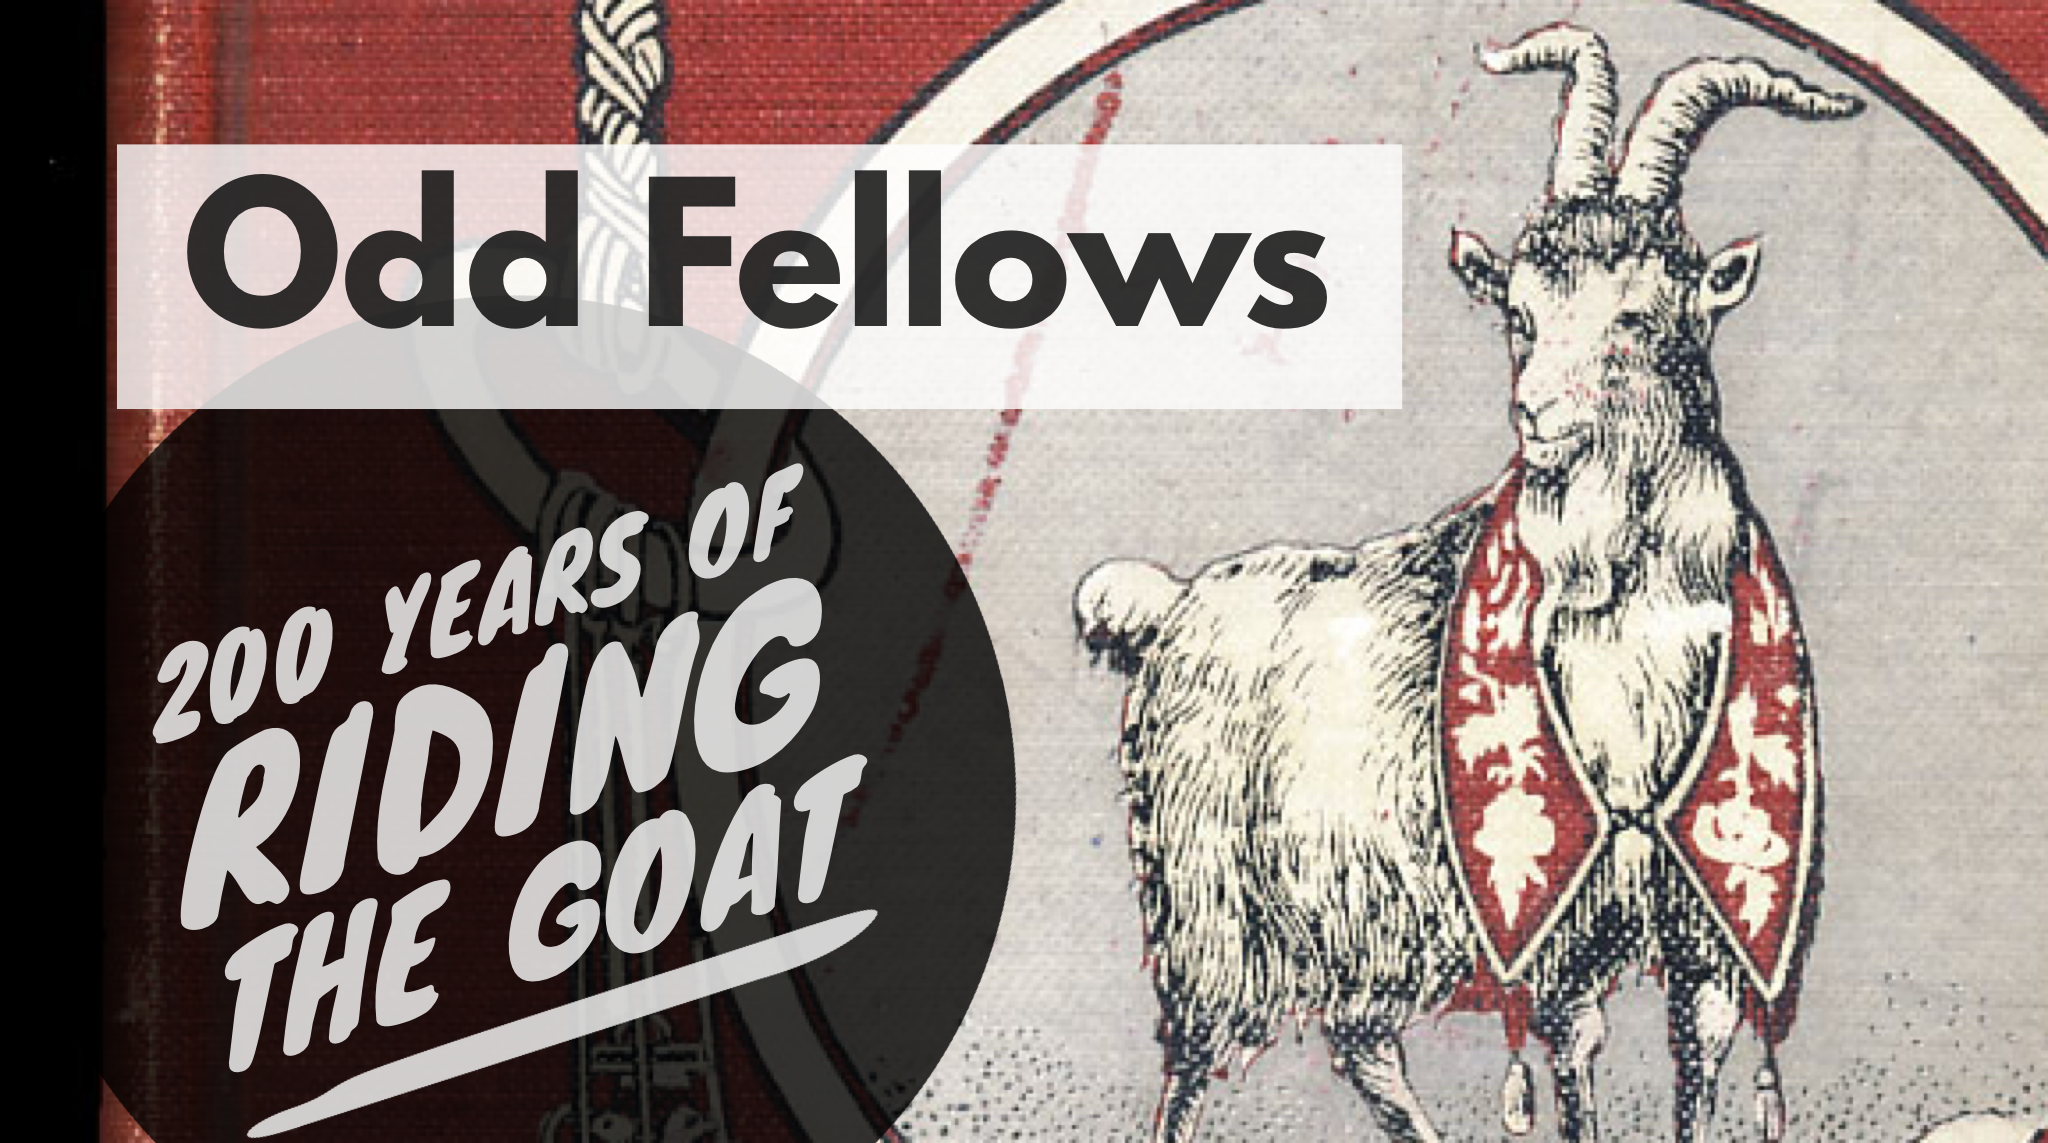 Odd Fellows: 200 Years of Riding the Goat – Presentation by